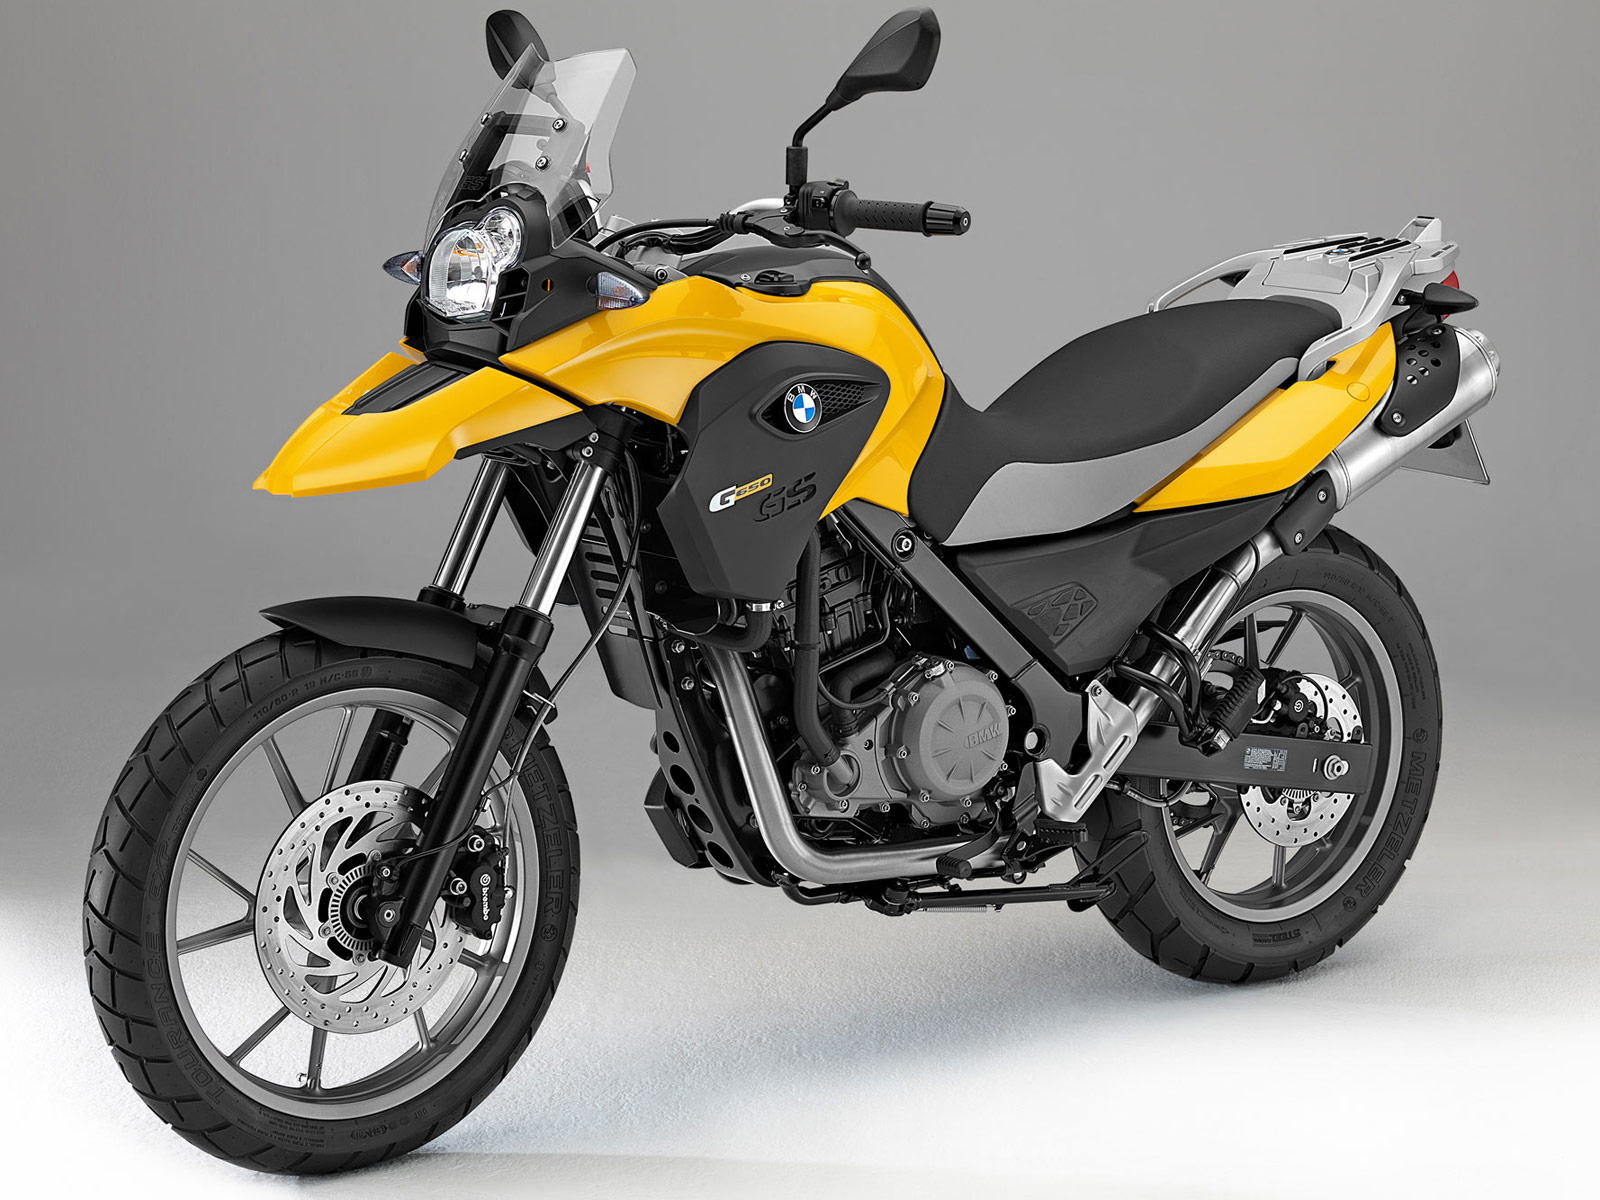 2013 bmw g650gs motorcycle insurance information. Black Bedroom Furniture Sets. Home Design Ideas